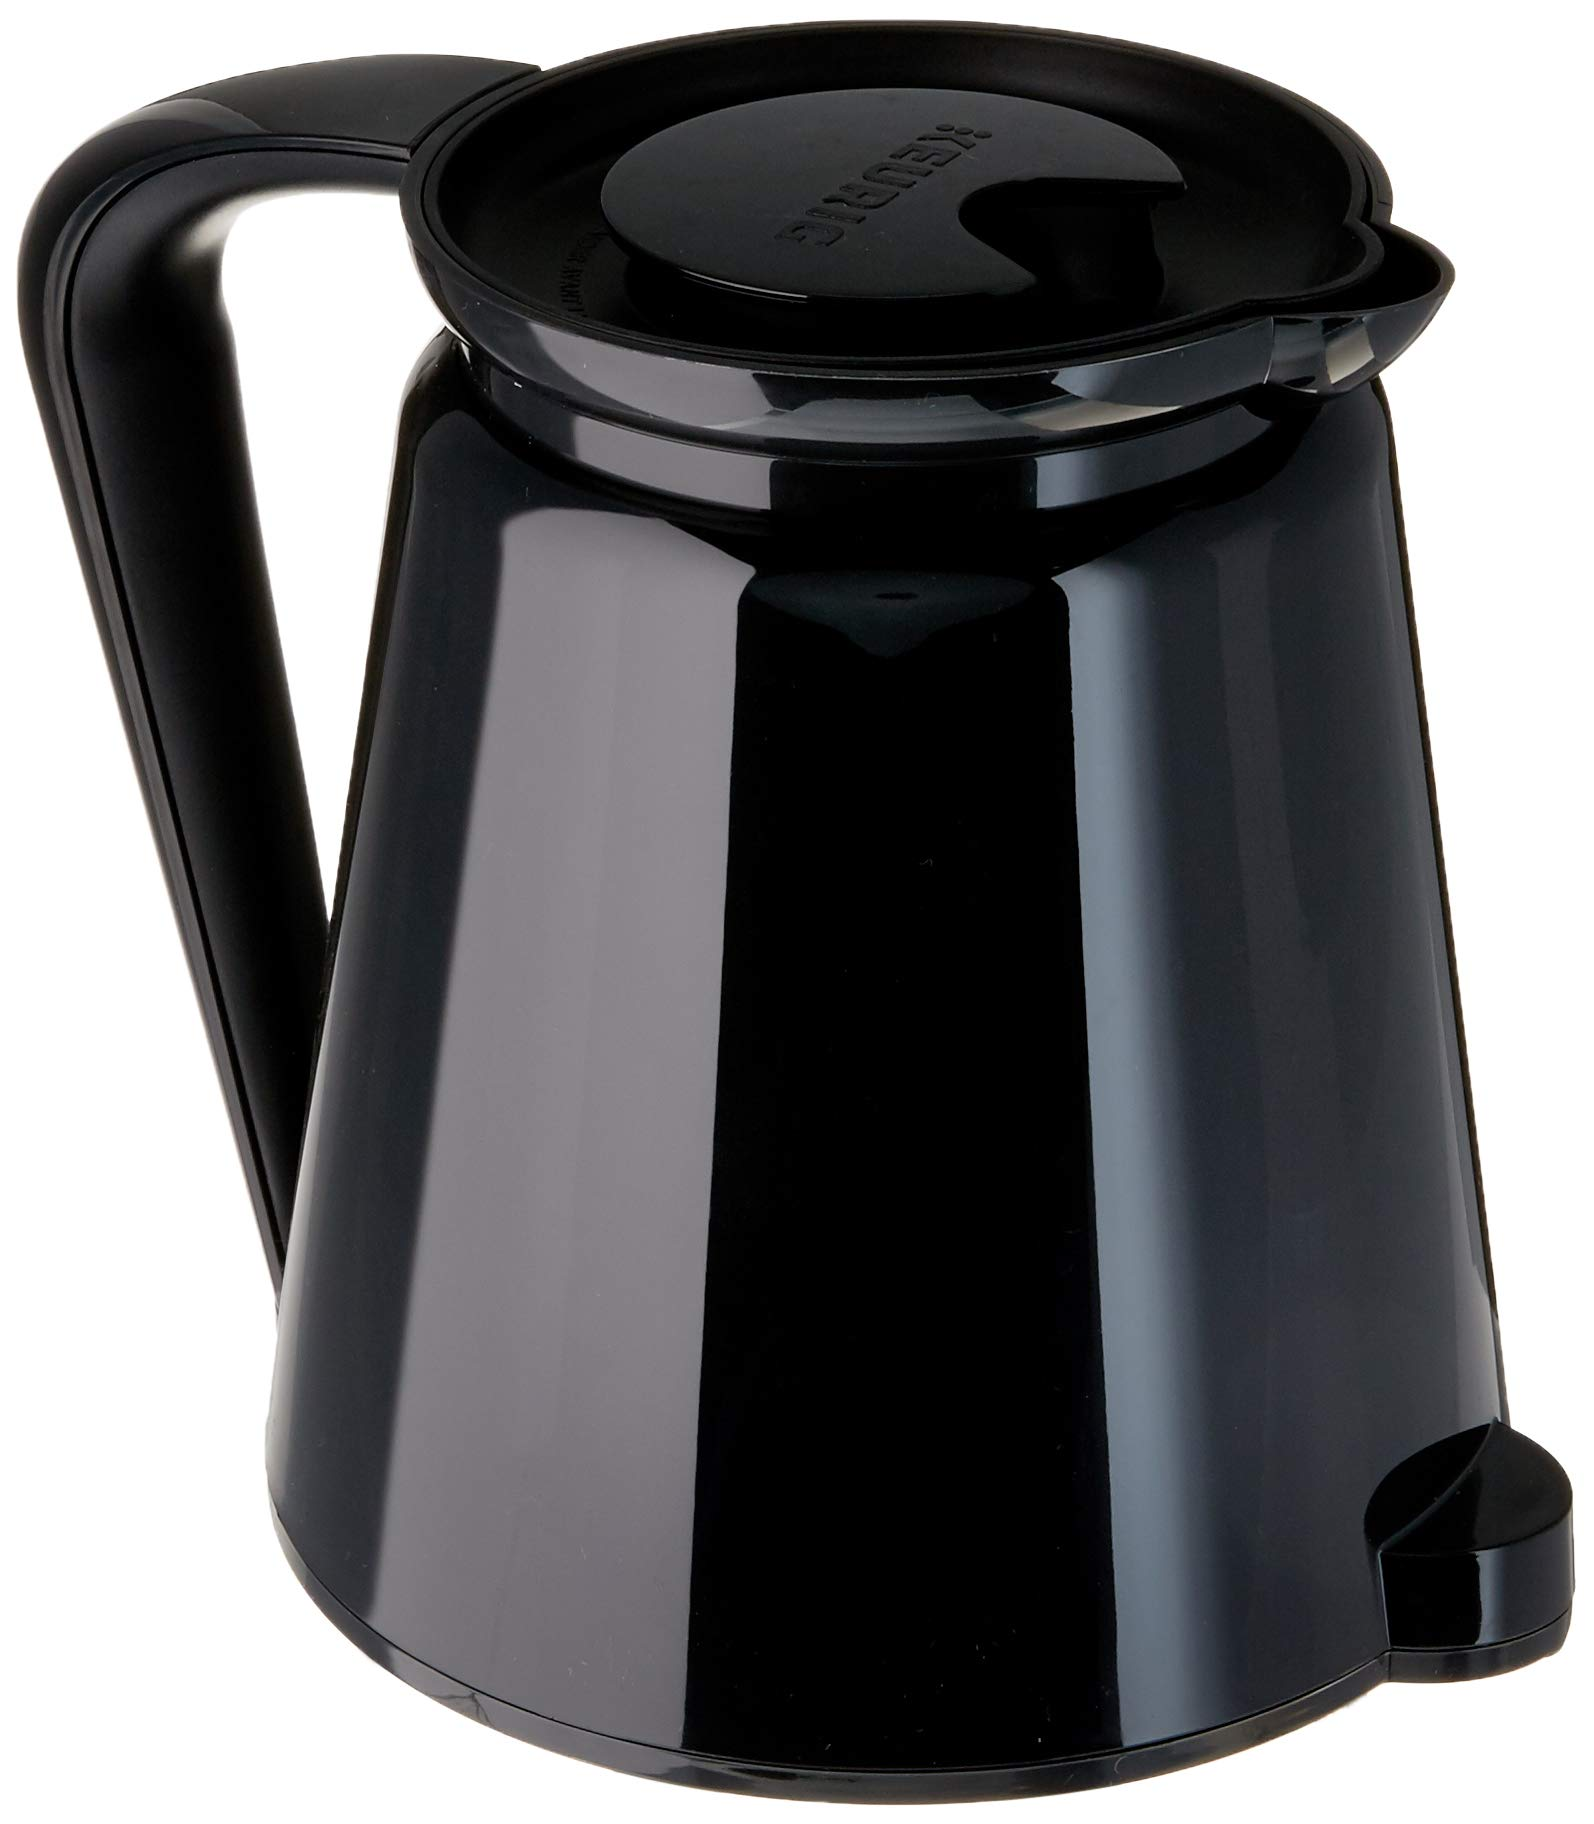 Keurig 2.0, 32oz Double-Walled, Plastic Carafe with Easy-Pour Handle, Holds and Dispenses Up to 4 Cups of Hot Coffee. For Use With Keurig 2.0 K-Cup Pod Coffee Makers by Keurig